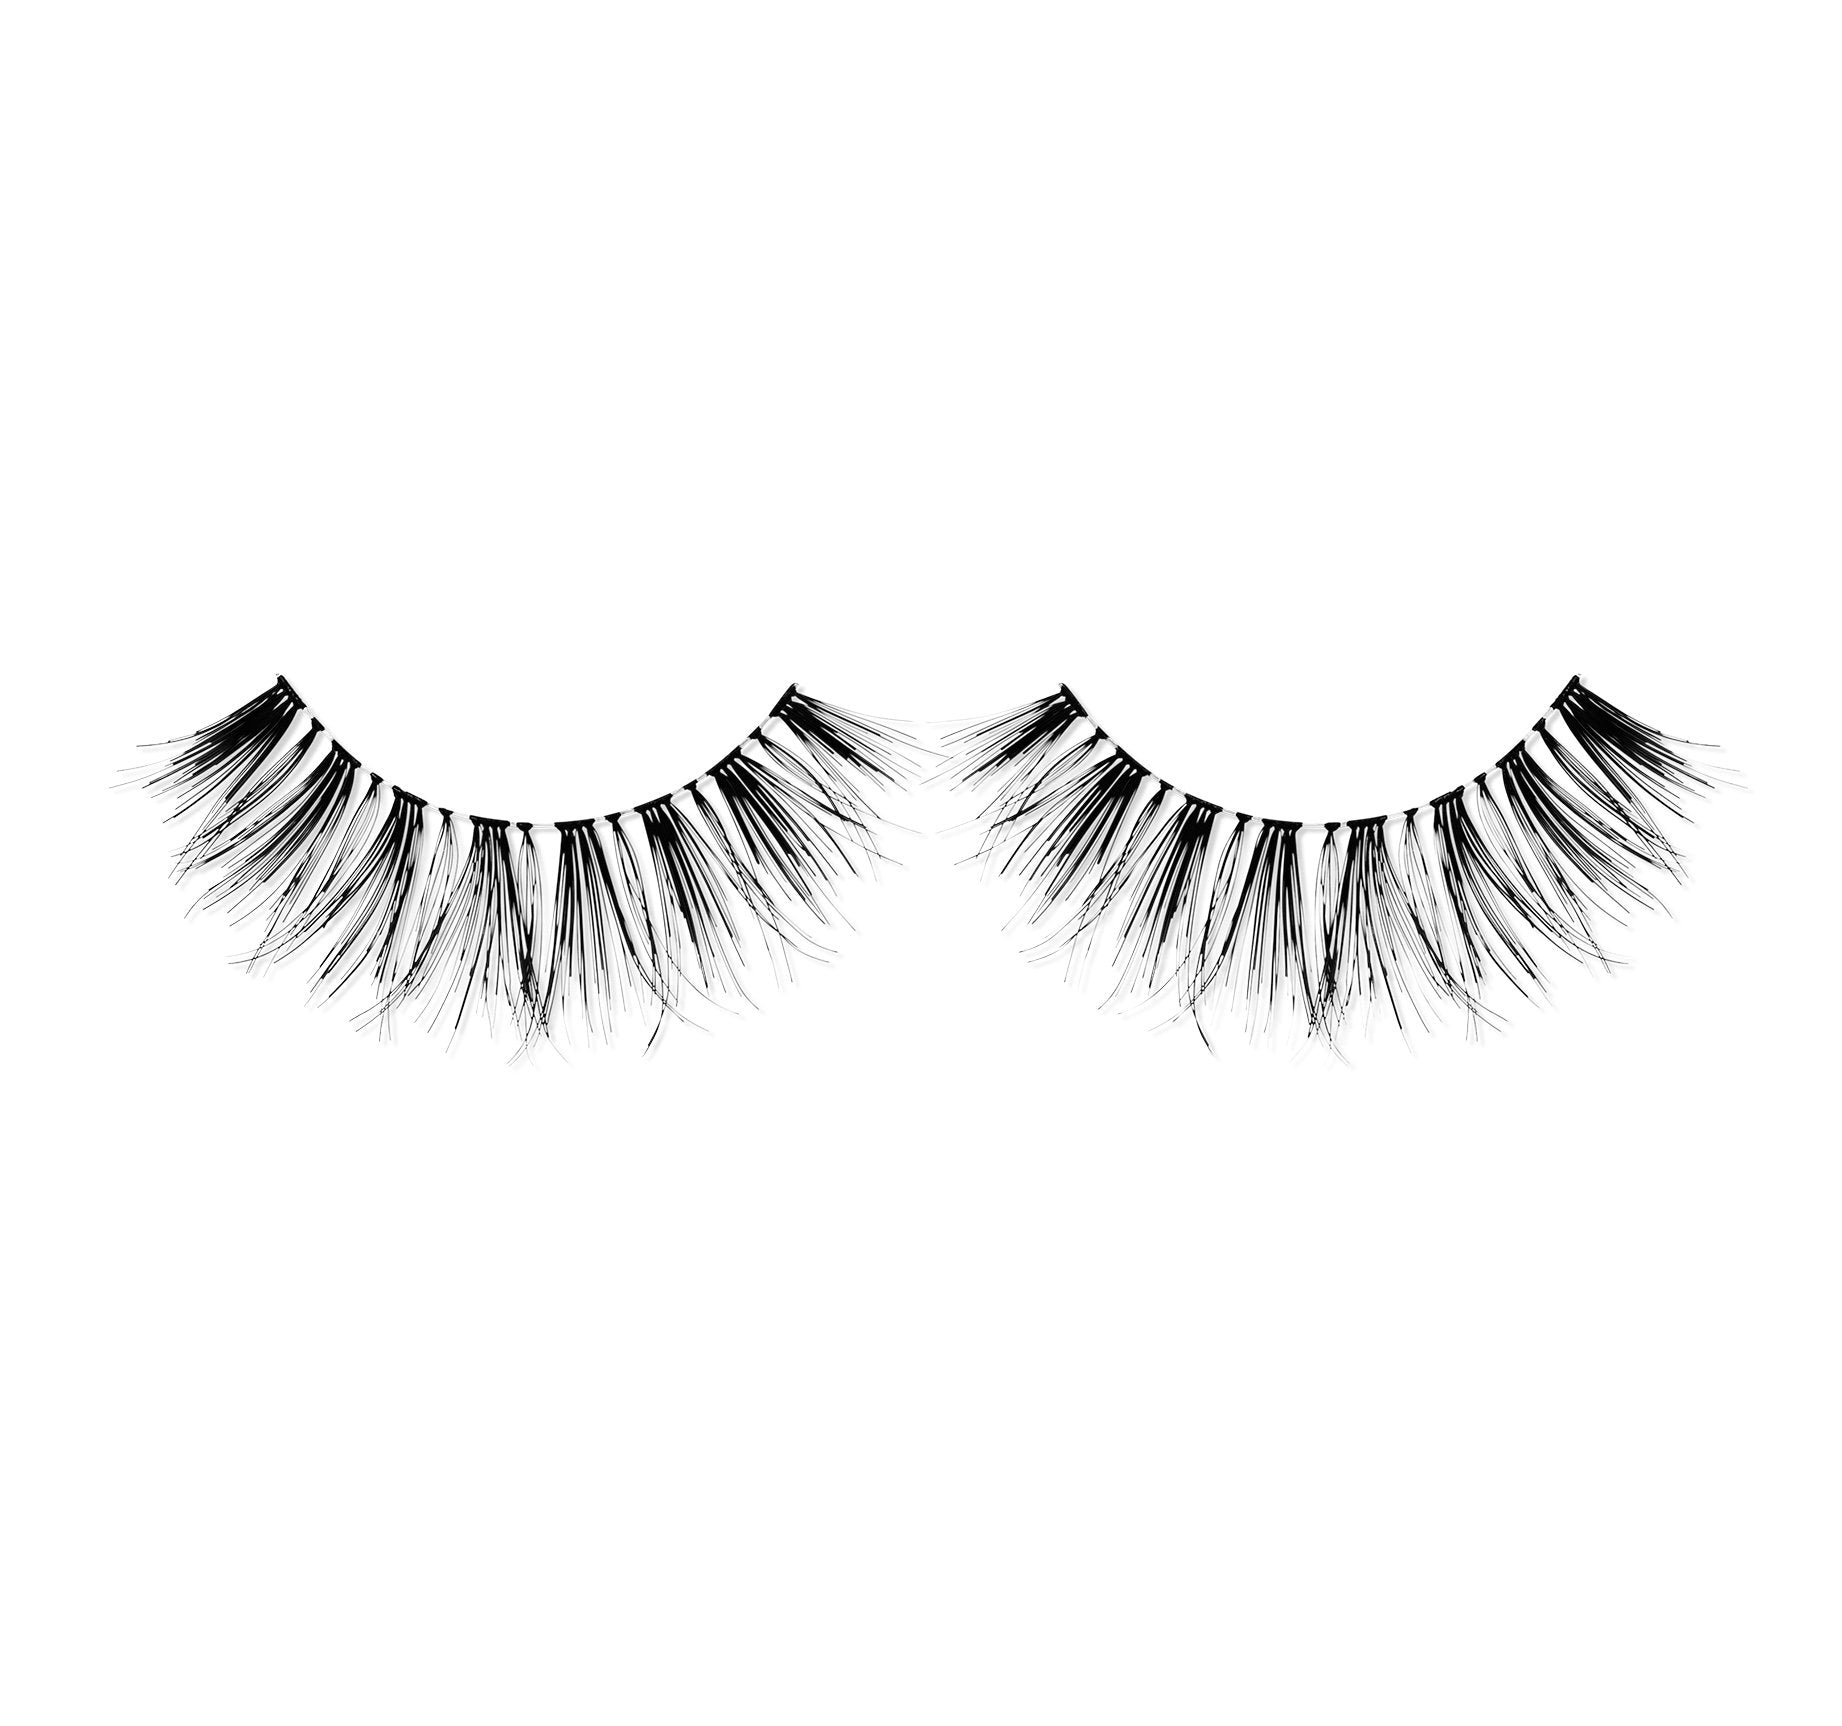 MORPHE LASHES - HOLLYWOOD HILLS, view larger image